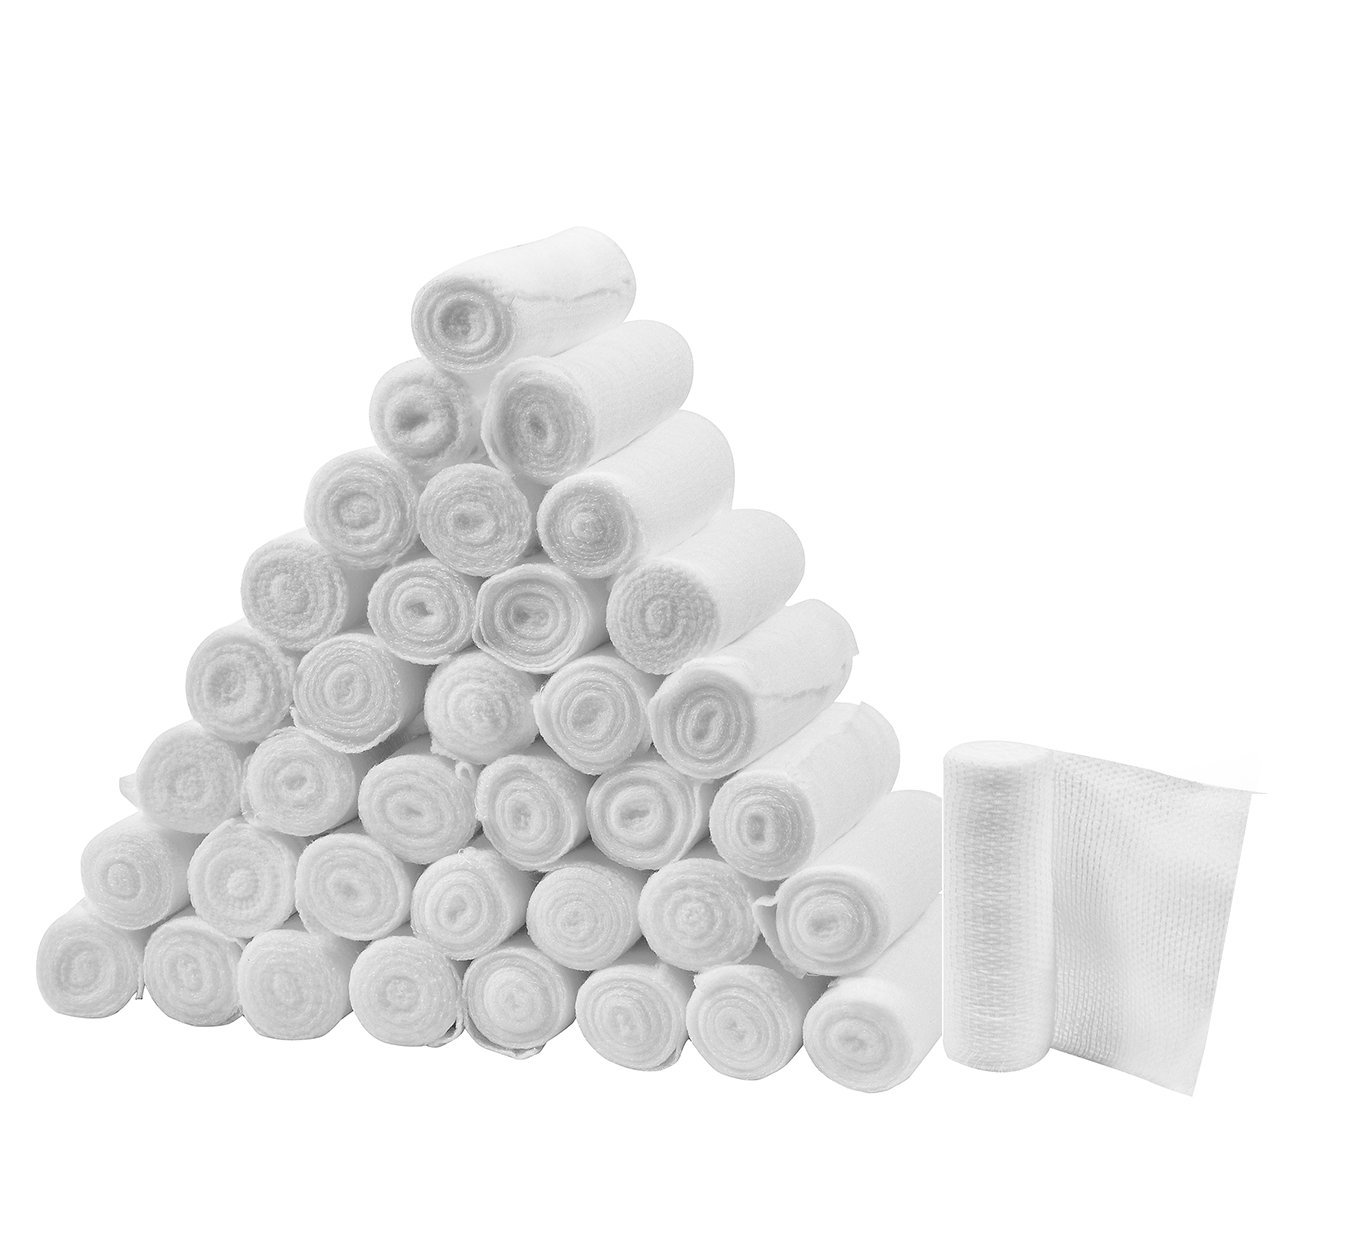 "FlexTrek Premium 36-Pack 3 Inch Conforming Stretch Gauze Bandage Rolls - Latex Free - 3"" x 4.1 yards Stretched"